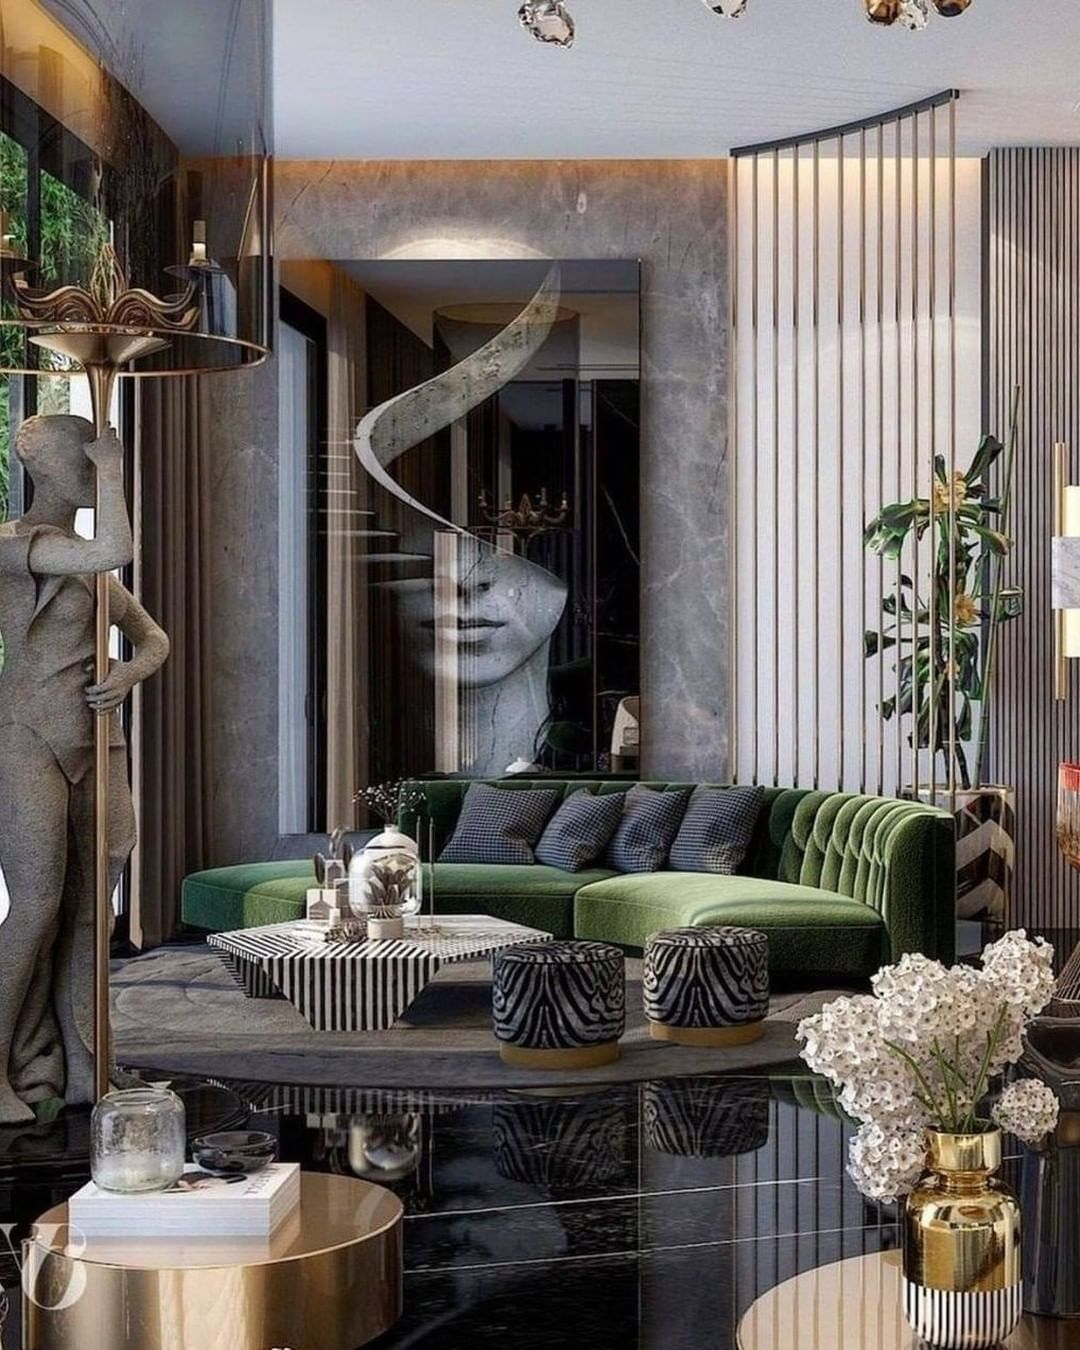 Playful Interior Design Ideas And Bright Room Colors Luxury Living Room Living Room Design Modern Luxury Home Decor